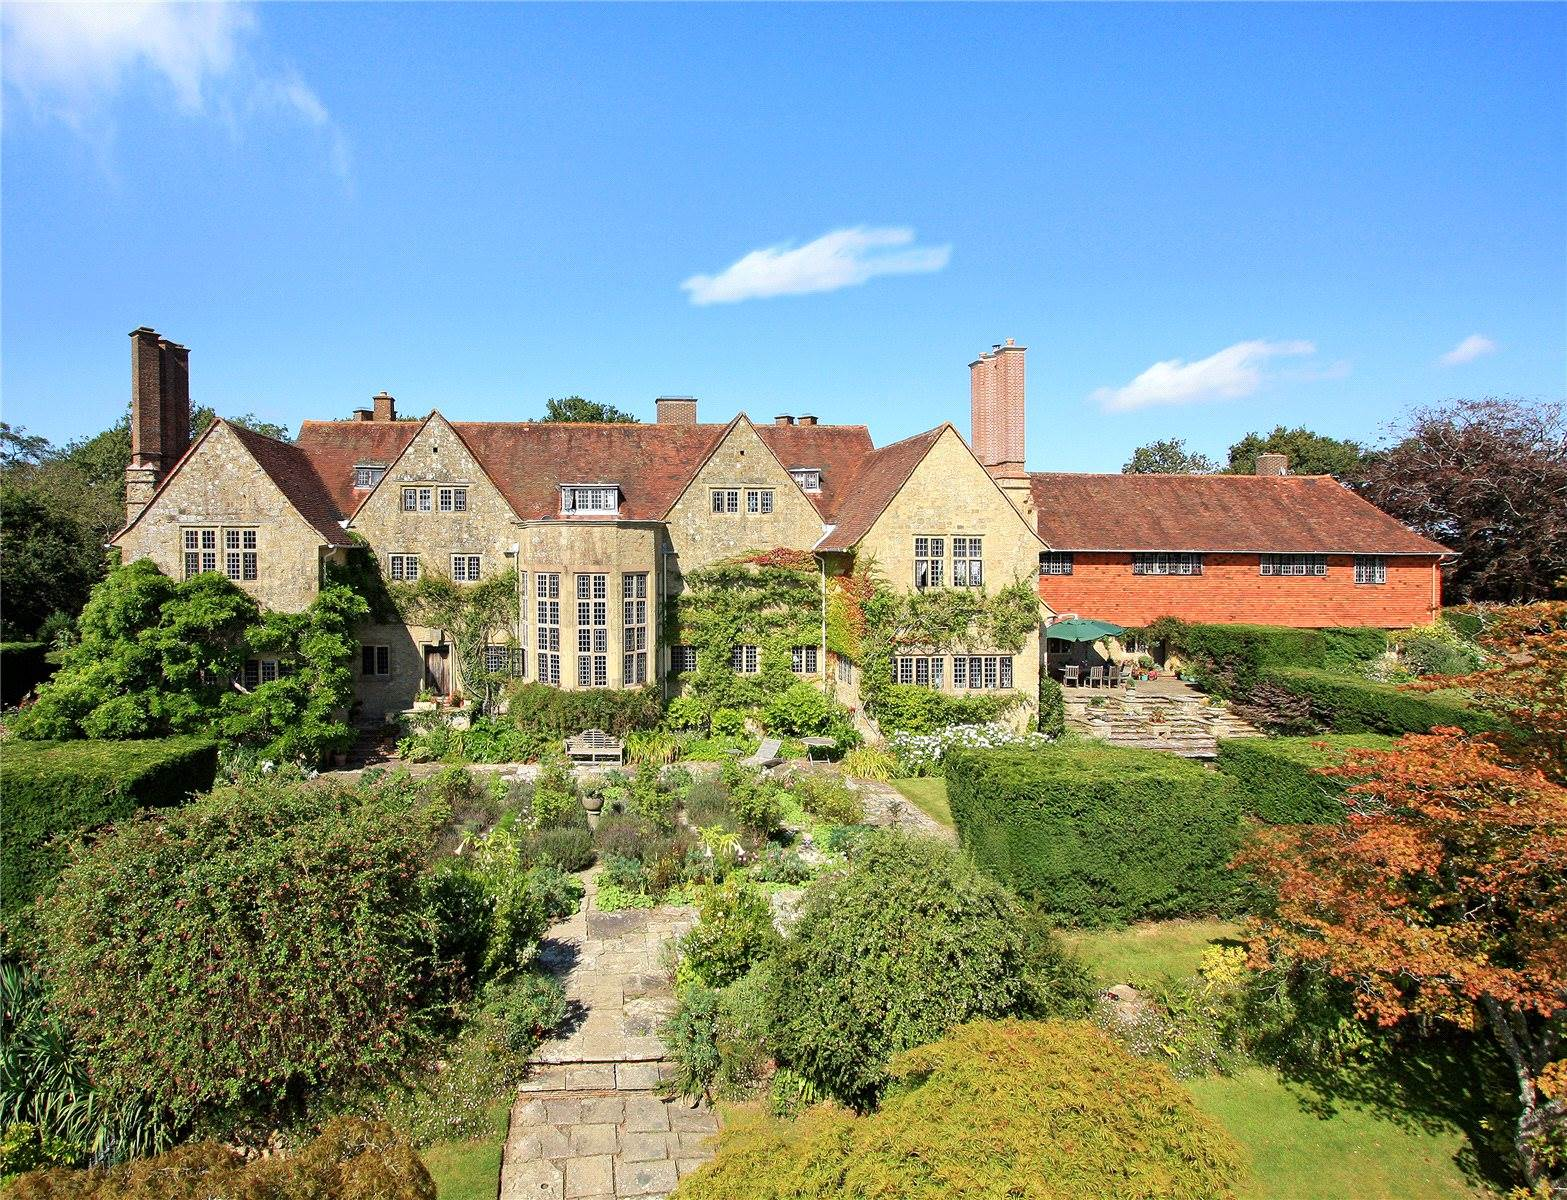 Magnificent mullioned windows are among the original Edwardian details of this Grade I-listed manor house overlooking England's South Downs National Park.